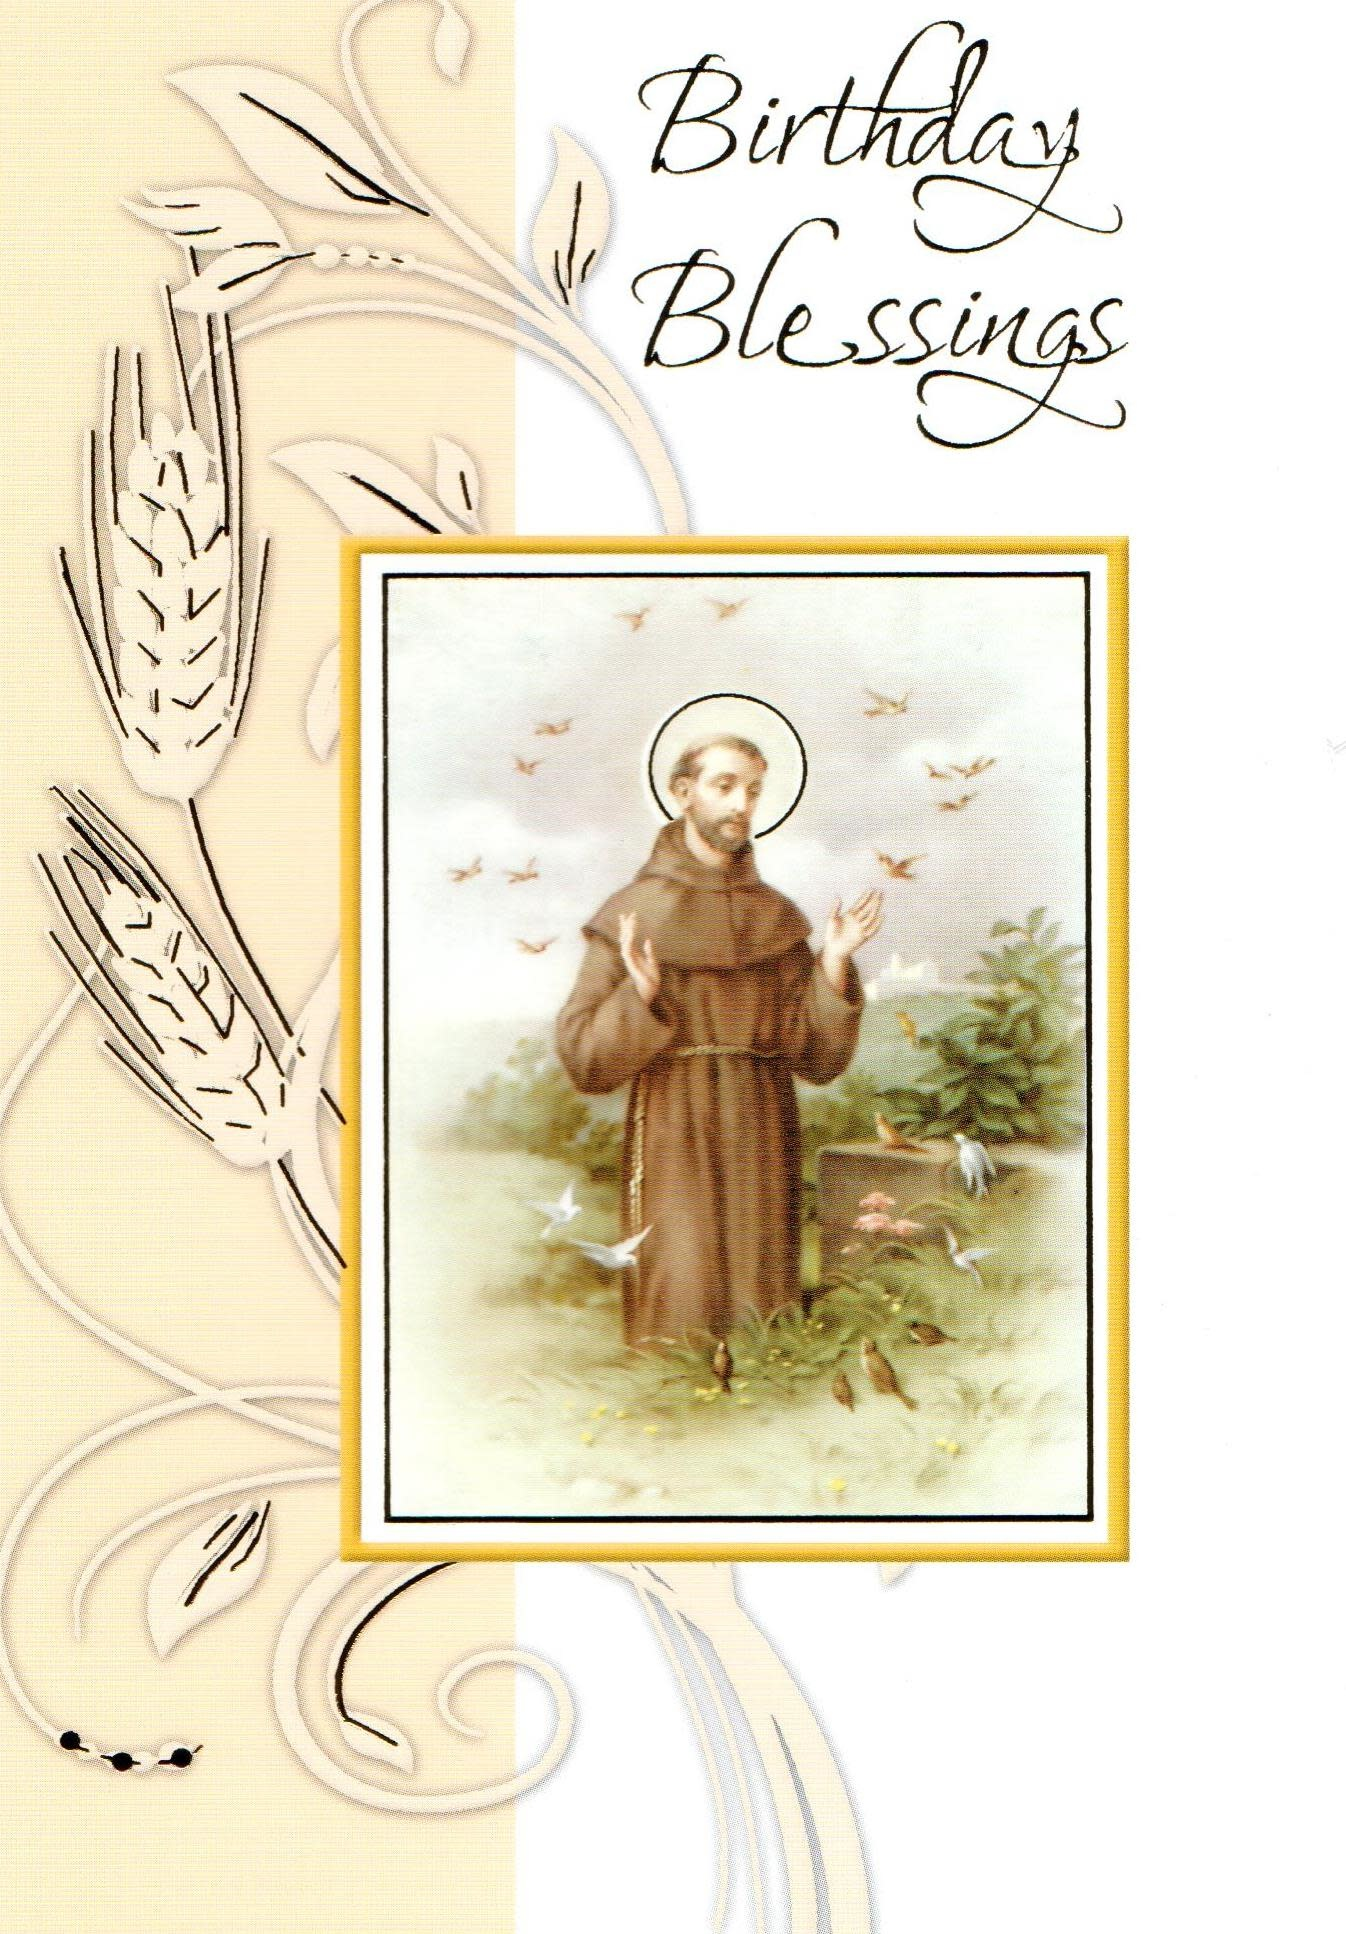 Birthday Blessings - St. Francis